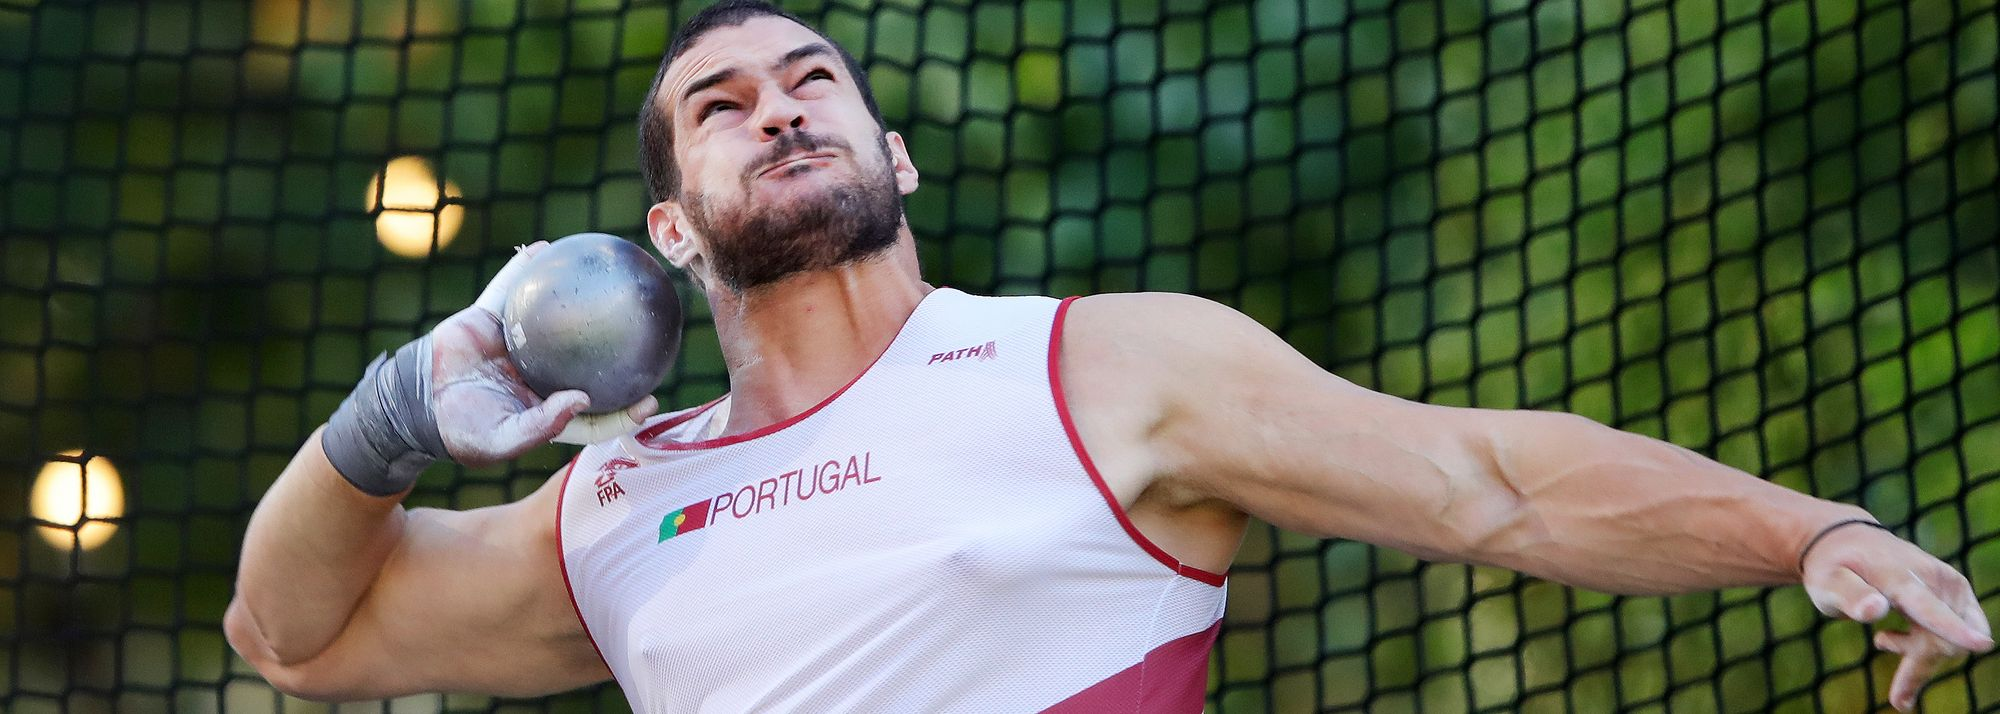 Francisco Belo, Fanny Roos and Ama Pipi were among the many athletes to break a meeting record at the Kladno hází a Kladenské Memoriály – a World Athletics Continental Tour Bronze meeting – in Kladno on Tuesday (15).